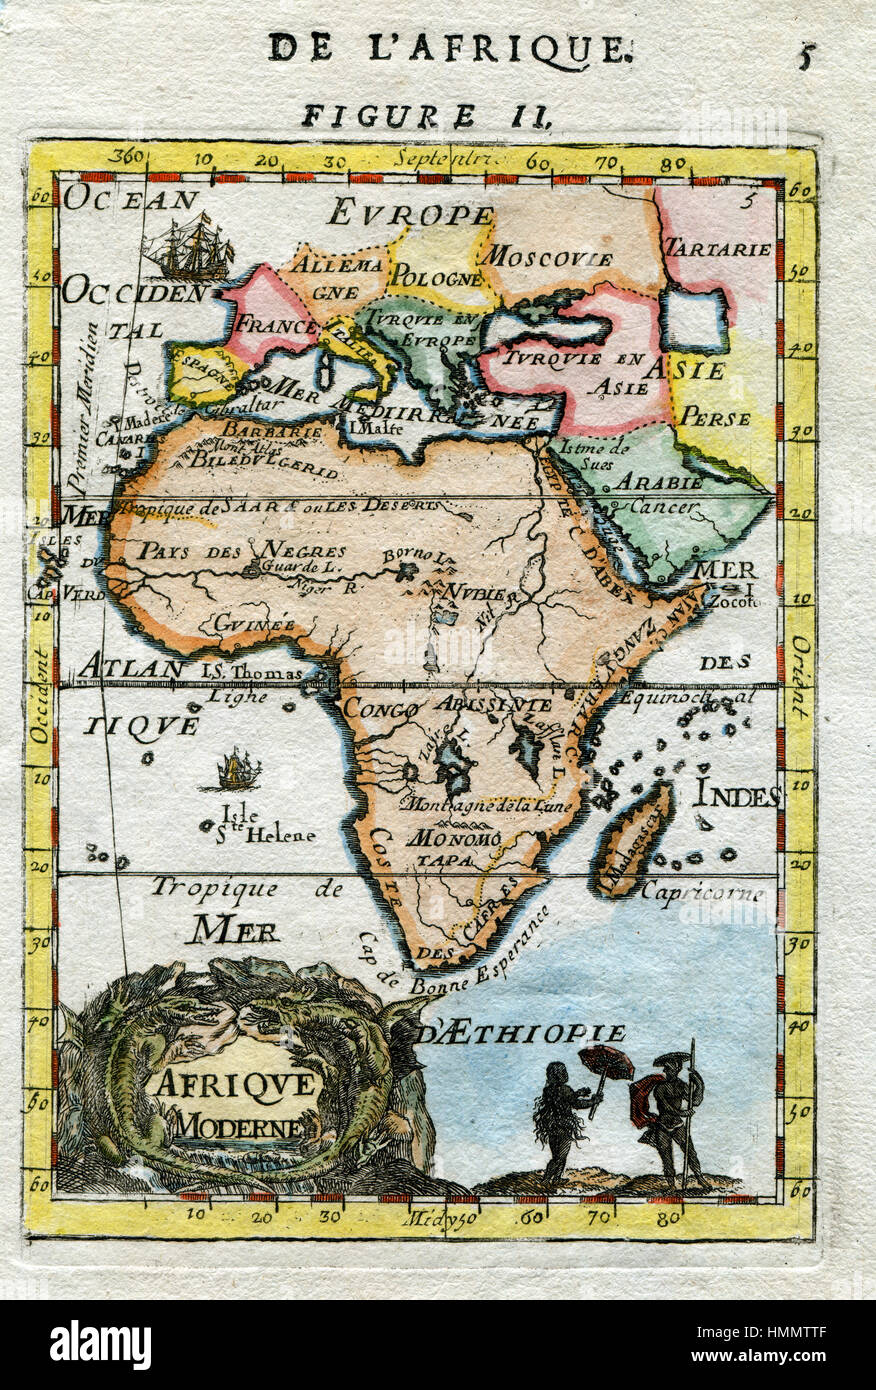 Antique Map Of Africa 1683 Stock Photo 133224239 Alamy